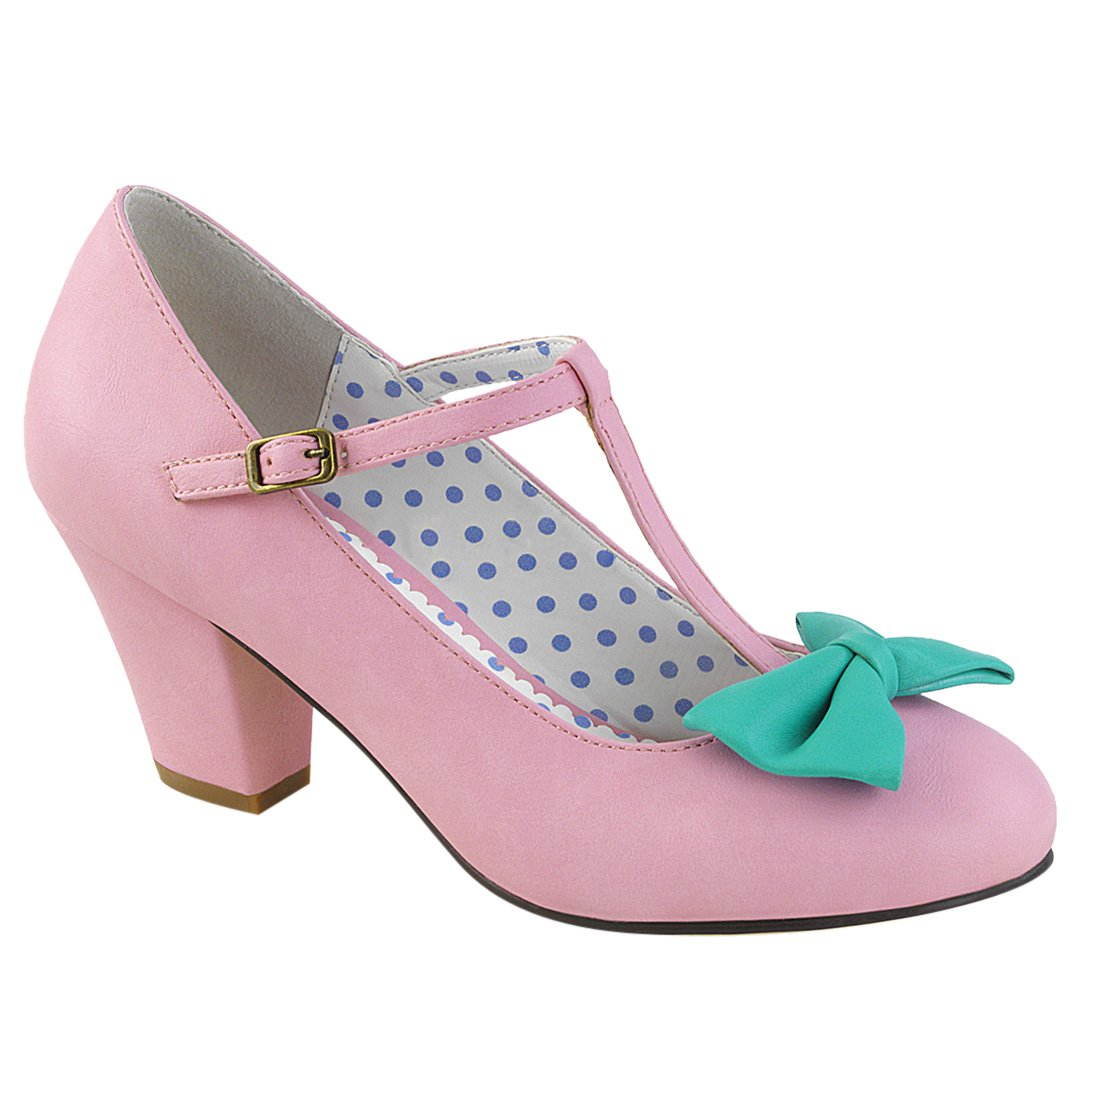 Pin Up Couture WIGGLE-50 38 EU|Pink-teal Faux Leather